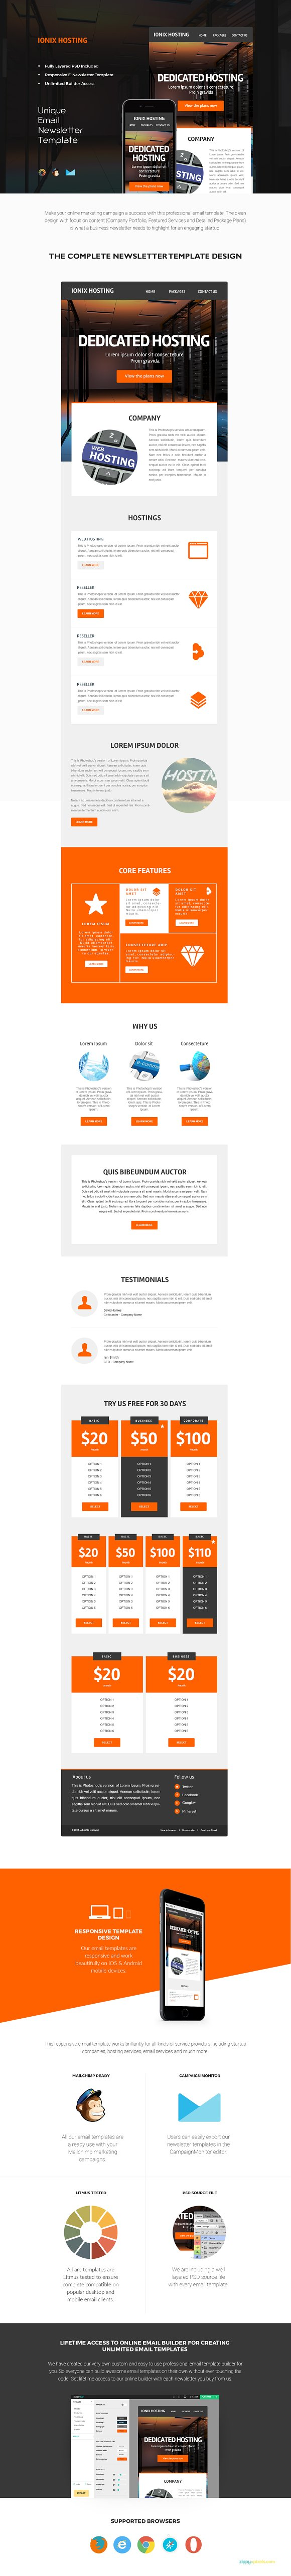 14 email newsletter templates bundle email templates creative market